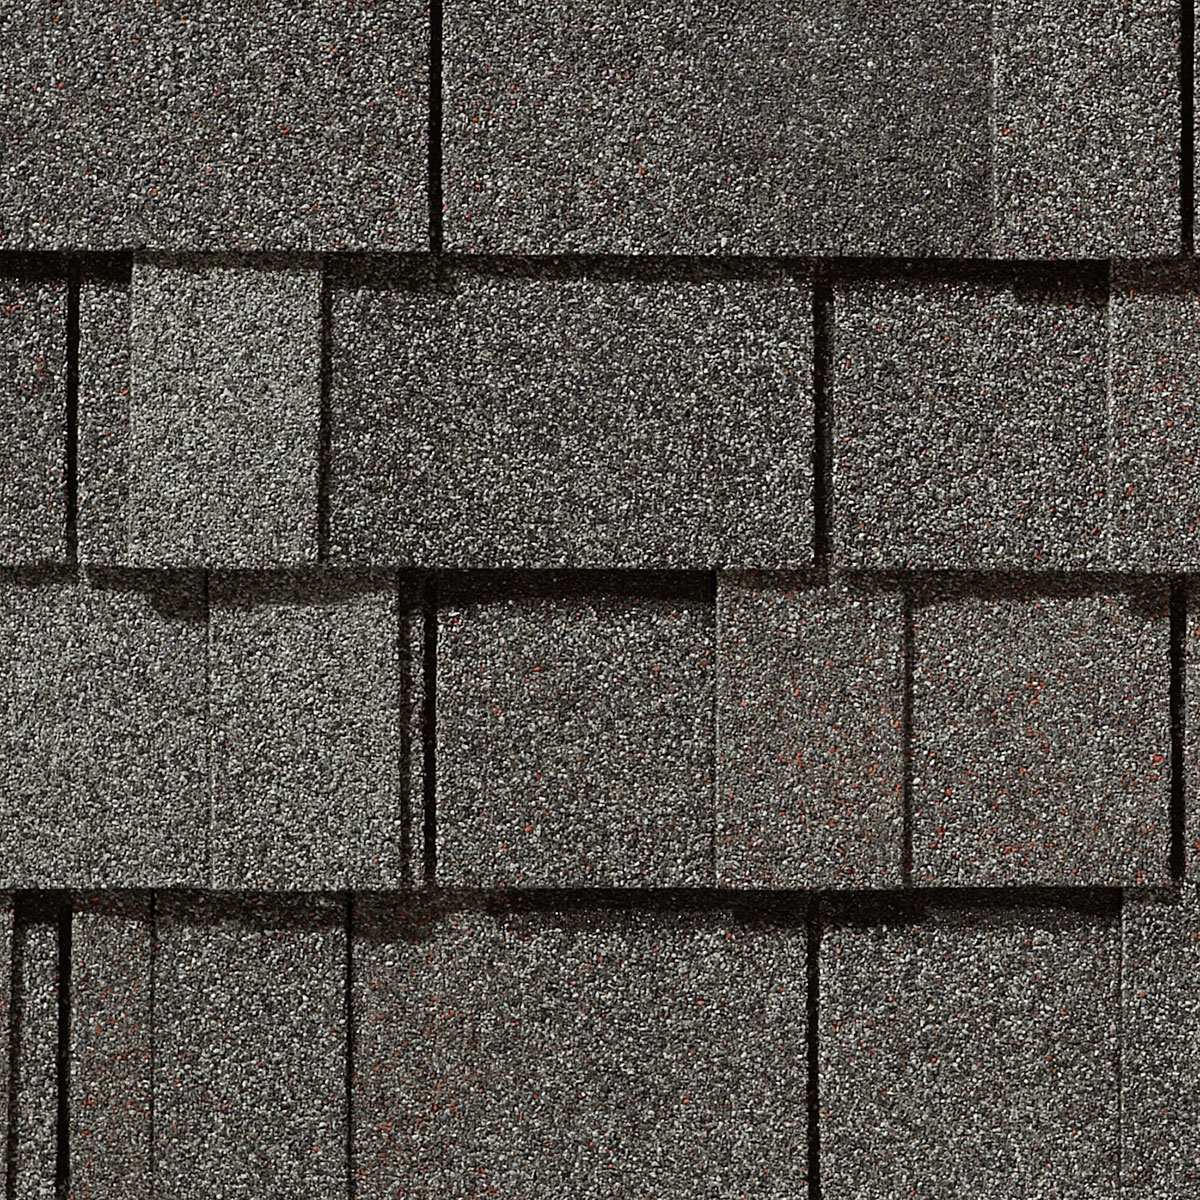 CT Independence Colonial Slate <br>(CTINCOSL)  <br>4 Bdl/Sq